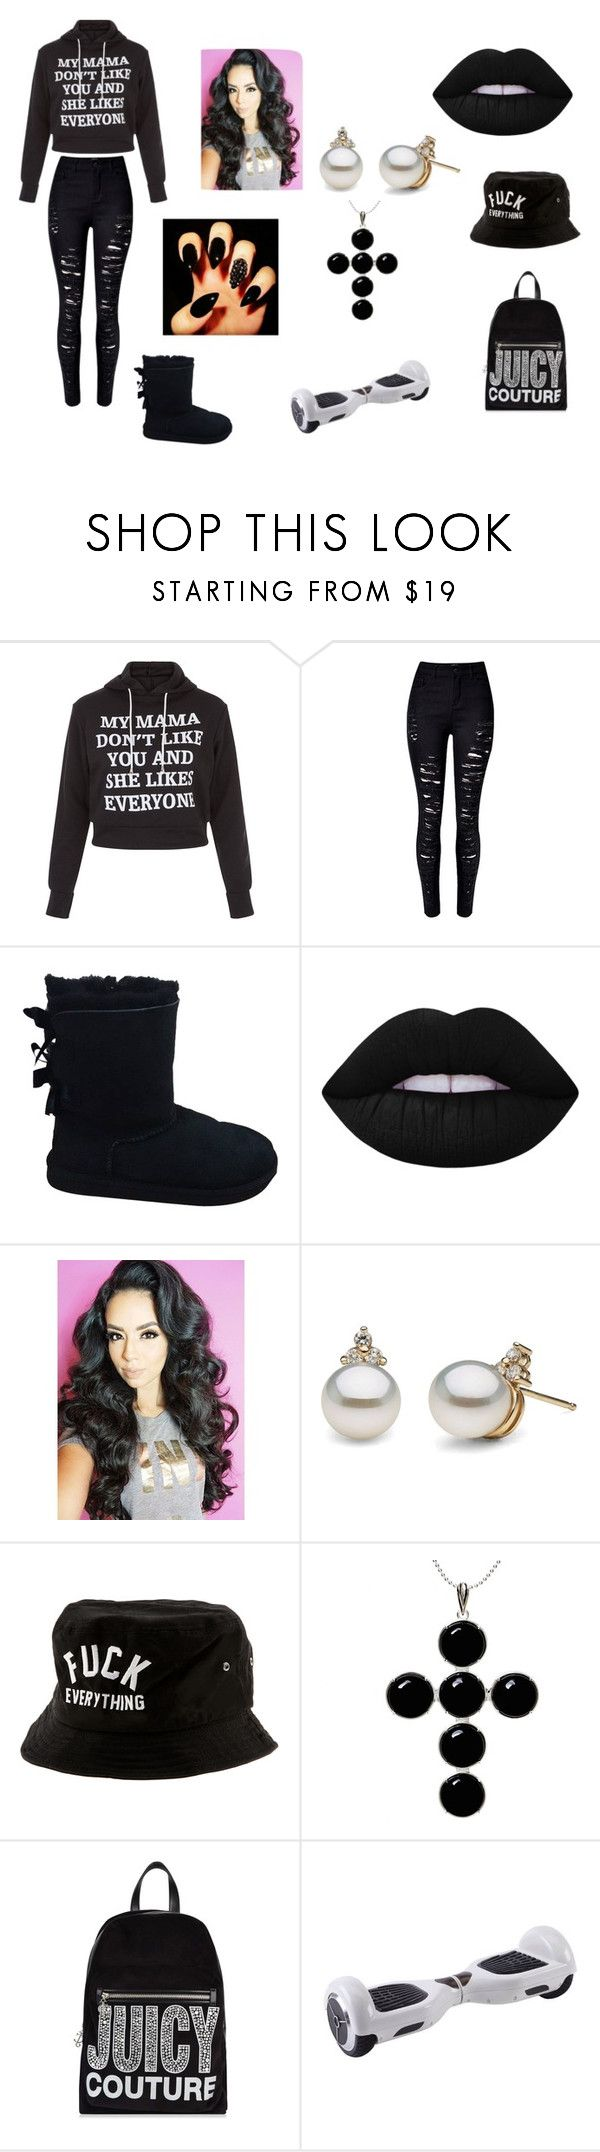 """""""yaya flee asl"""" by really-rayy ❤ liked on Polyvore featuring New Look, WithChic, UGG Australia, Lime Crime, Kill Brand, Kiki Minchin and Juicy Couture"""